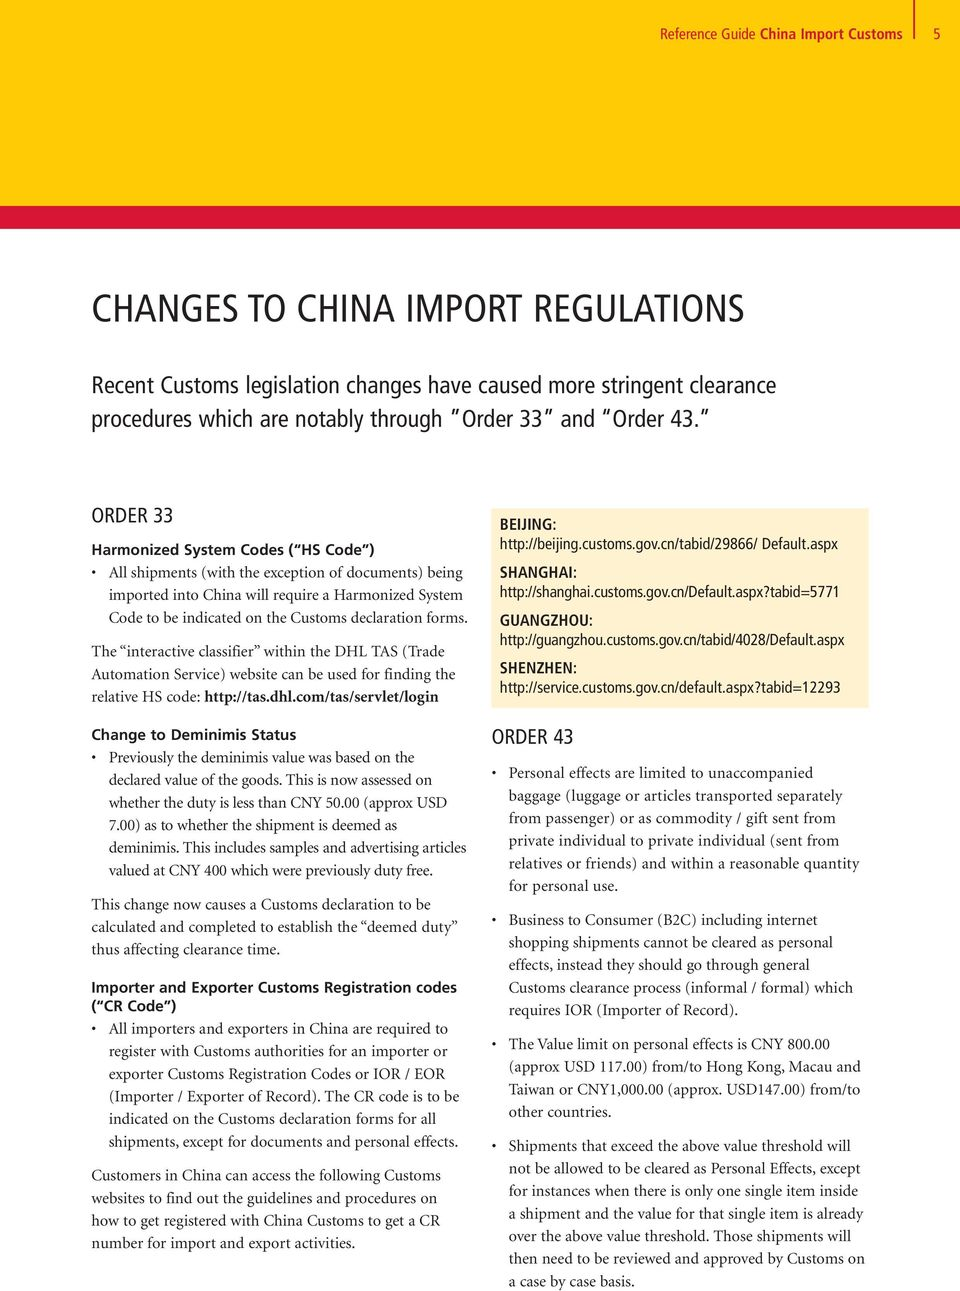 Reference Guide CHINA CUSTOMS  - PDF